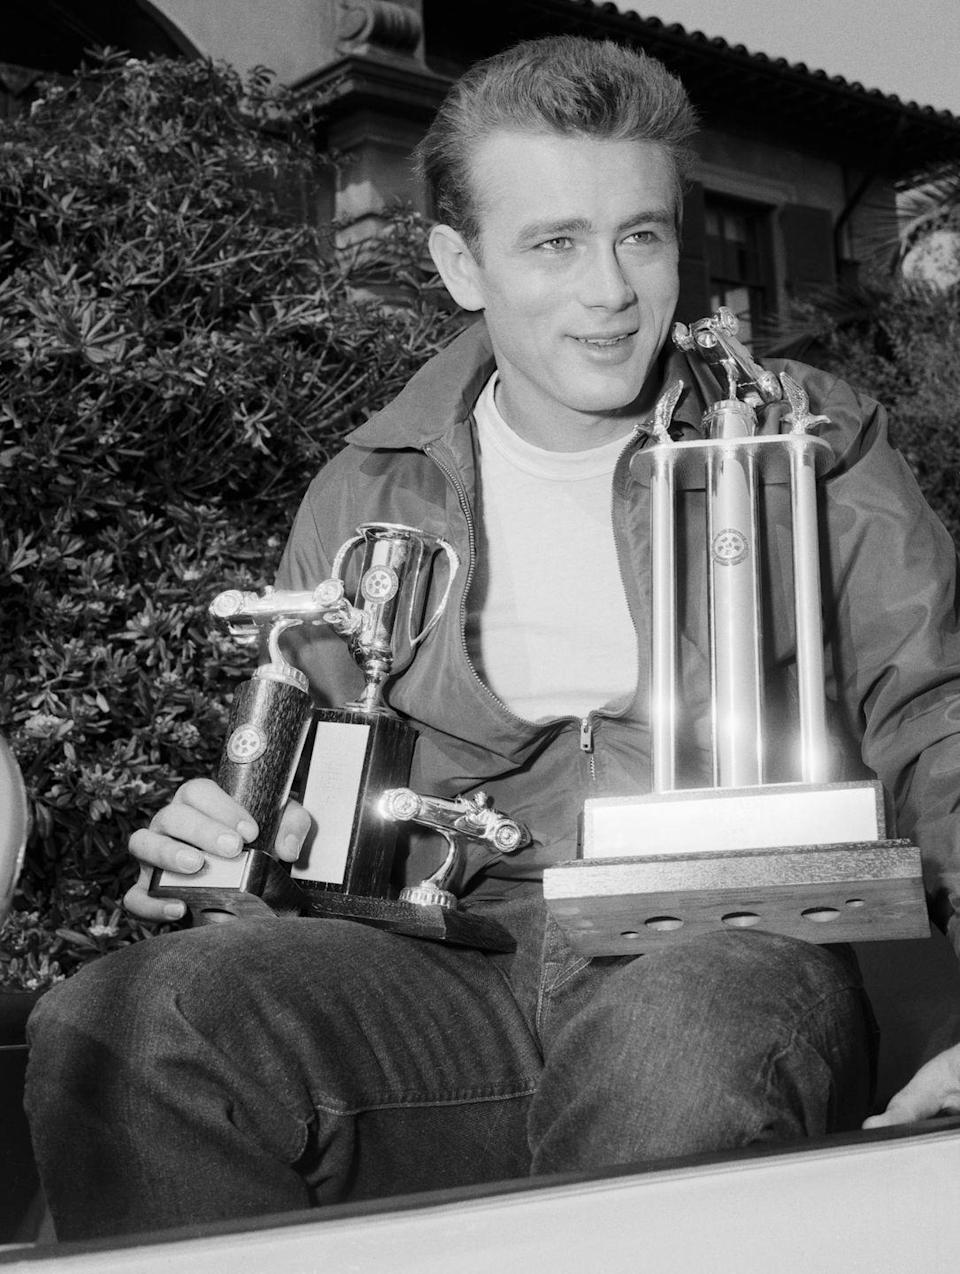 <p>Actor James Dean (<em>Rebel Without A Cause</em>) proudly poses with the three trophies he took home for winning the Palm Springs Road Race on May 6, 1955. The 24-year-old car enthusiast tragically died in a vehicle-related accident that following September.<br></p>